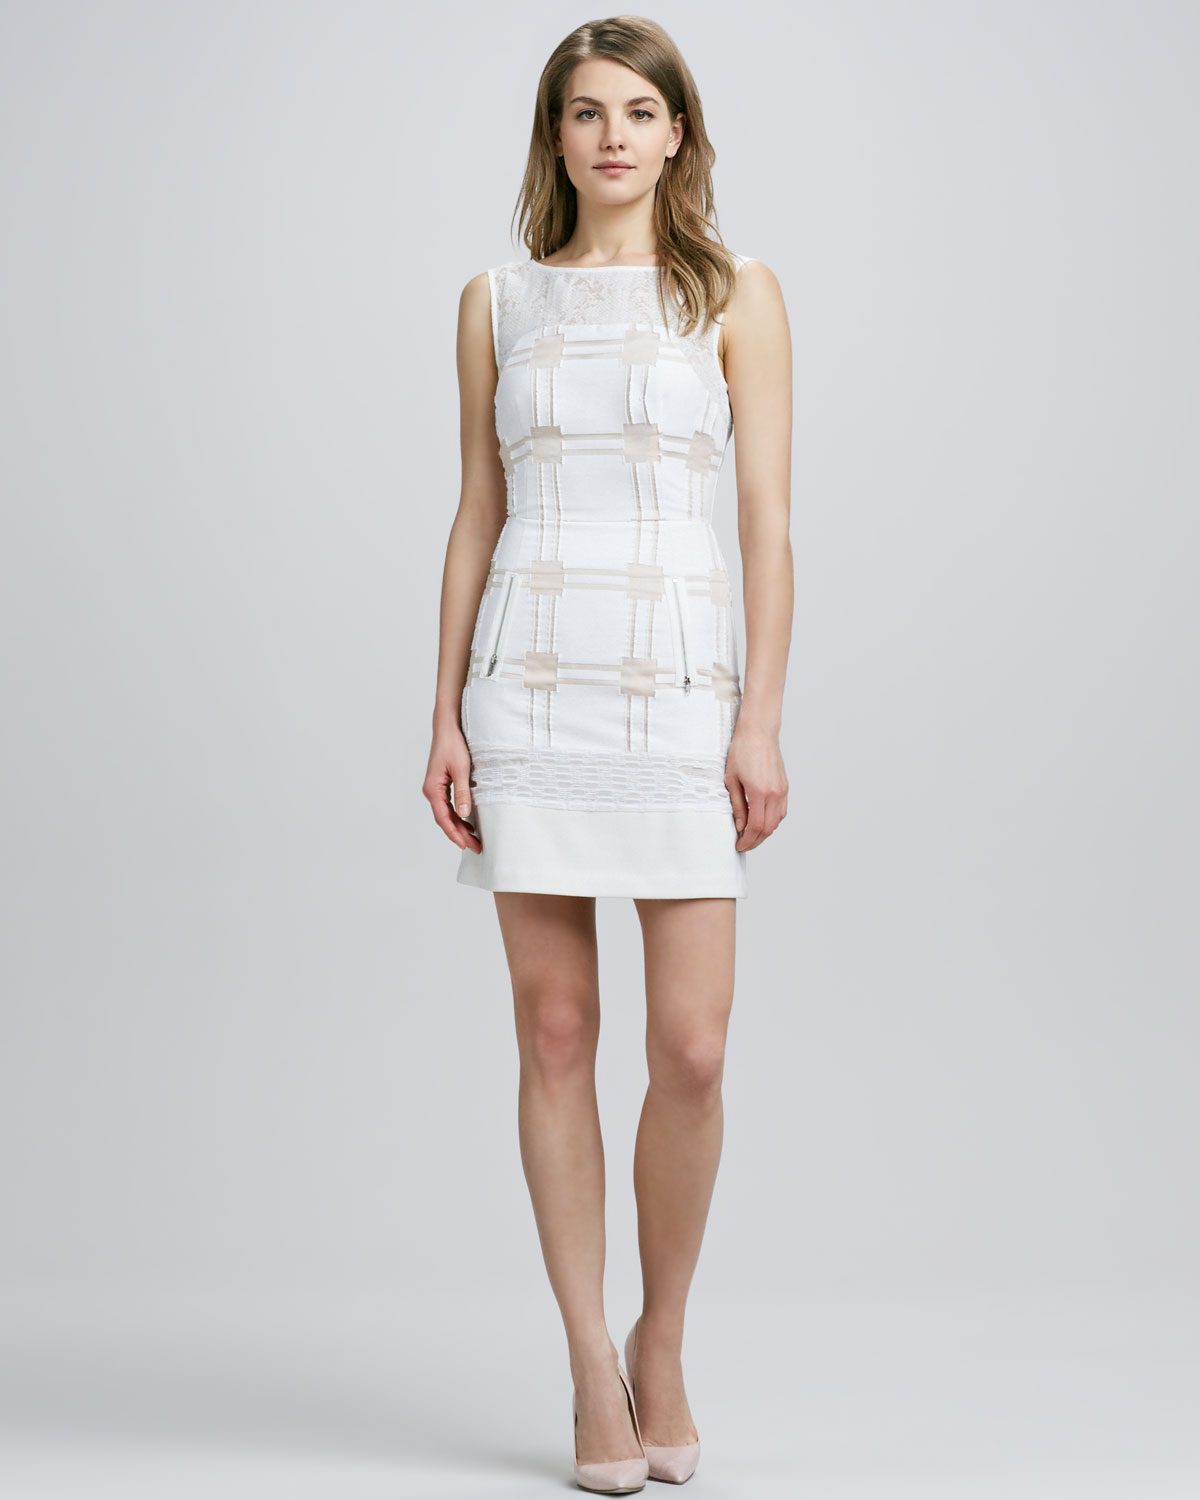 tracy-reese-white-sleeveless-mixed-media-shift-dress-product-1-9786193-080507432.jpeg